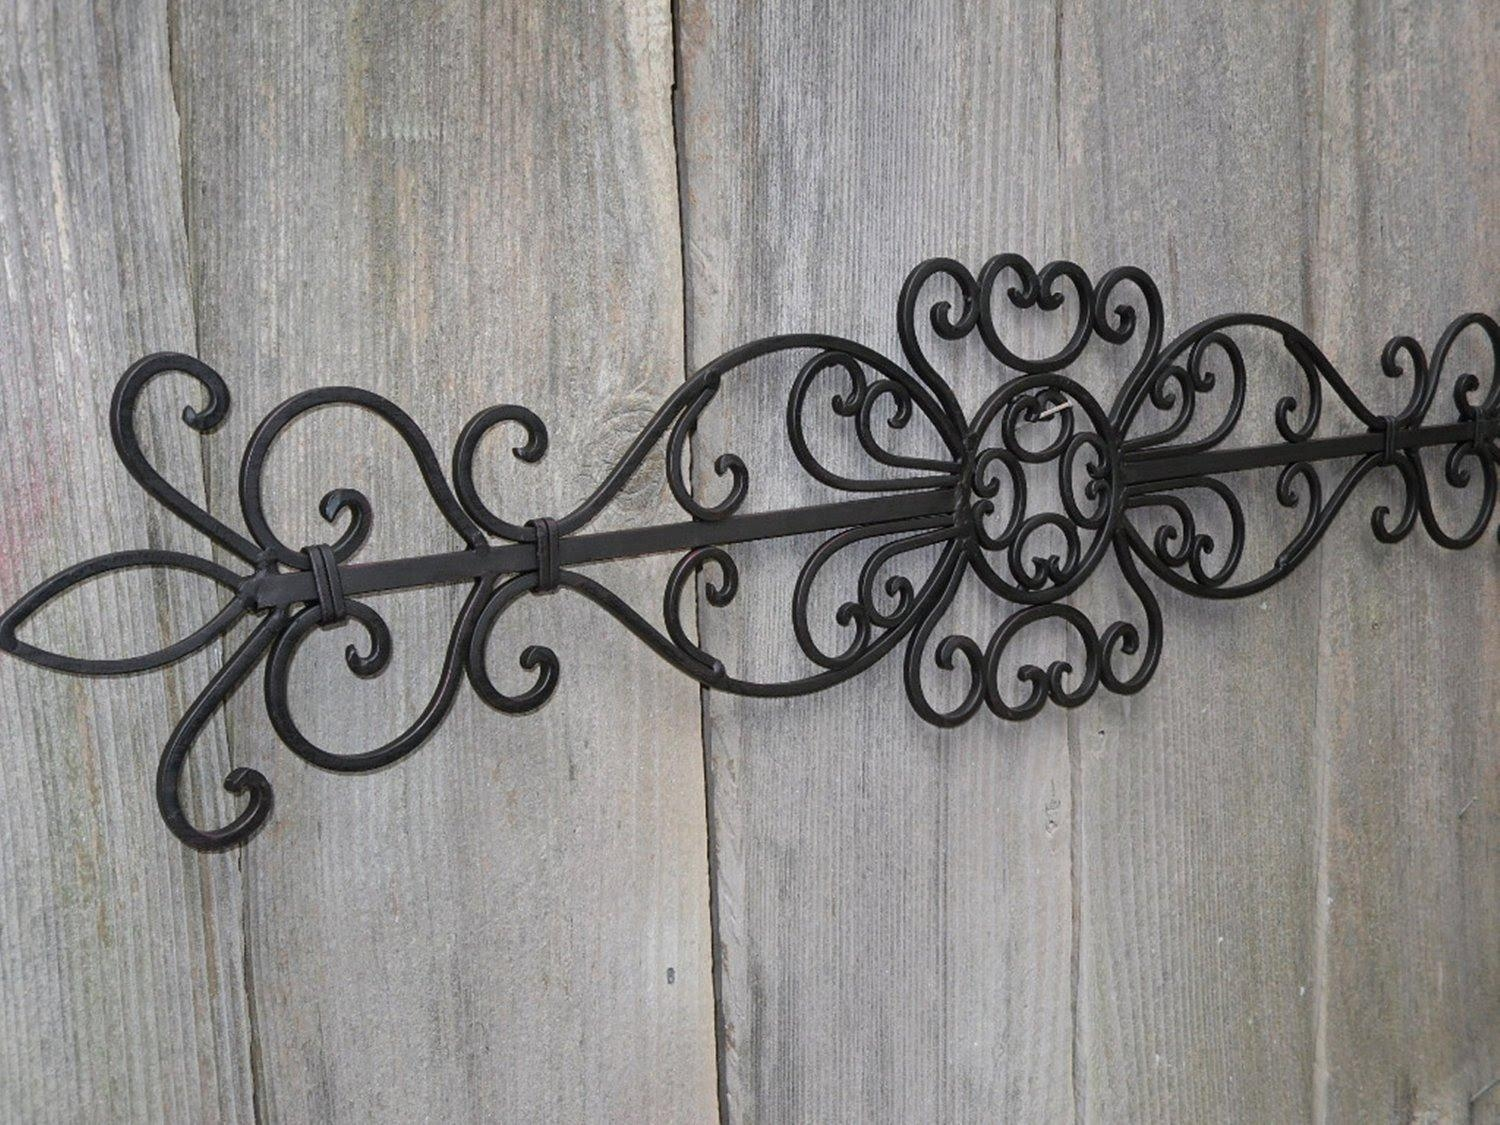 Wrought Iron Wall Decor # Wrought Iron Wall Art Decor – Youtube Throughout Wrought Iron Garden Wall Art (View 6 of 20)